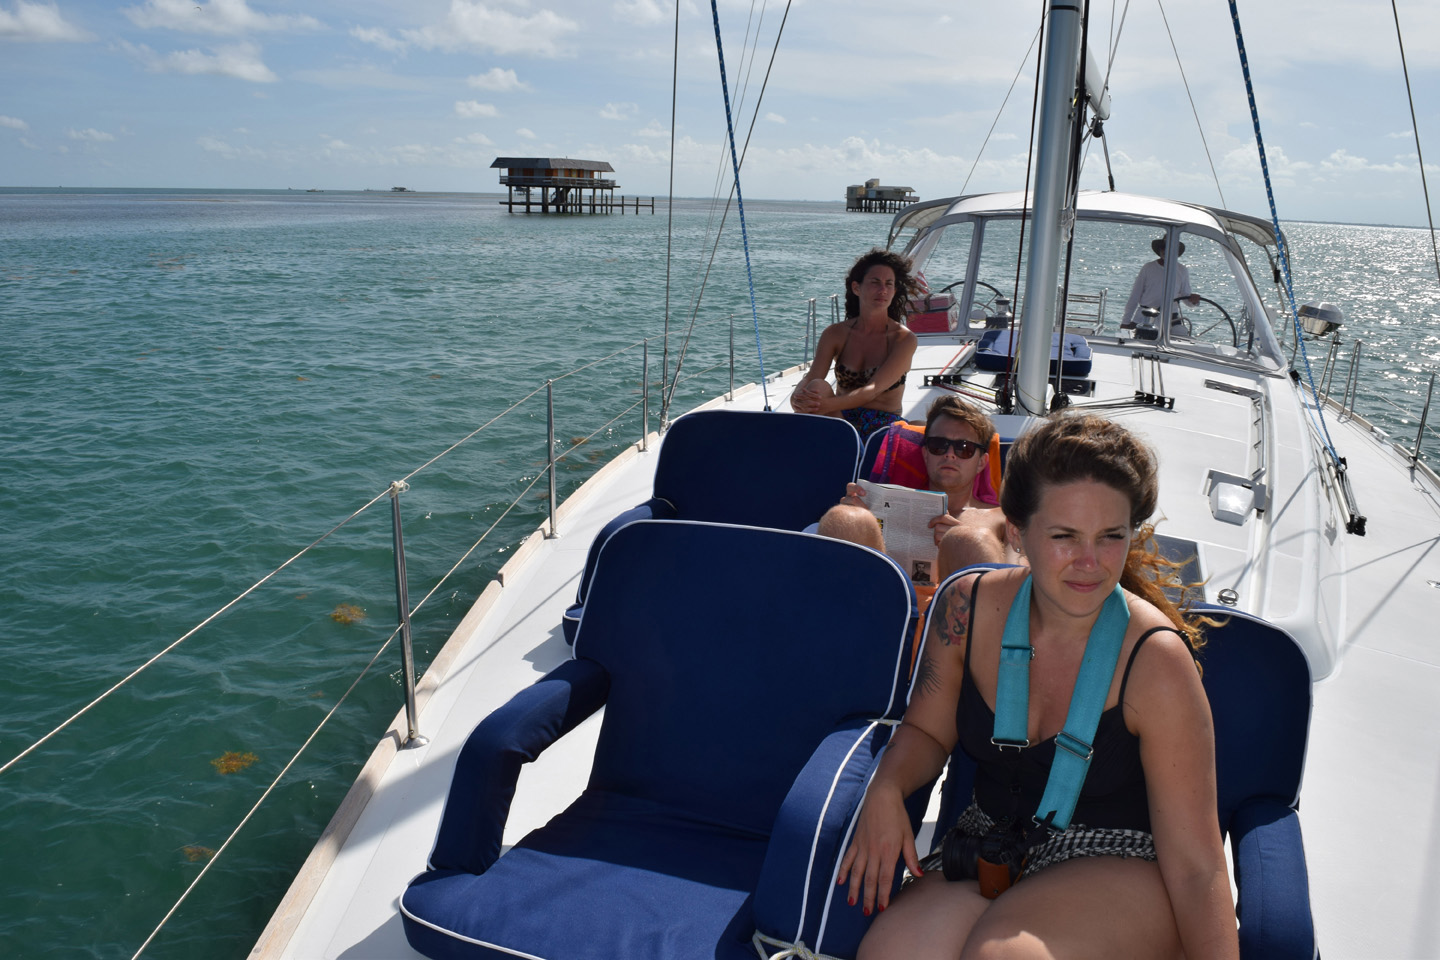 HISTORIC STILTSVILLE HOUSES IN THE SHALLOW WATERS OF BISCAYNE BAY